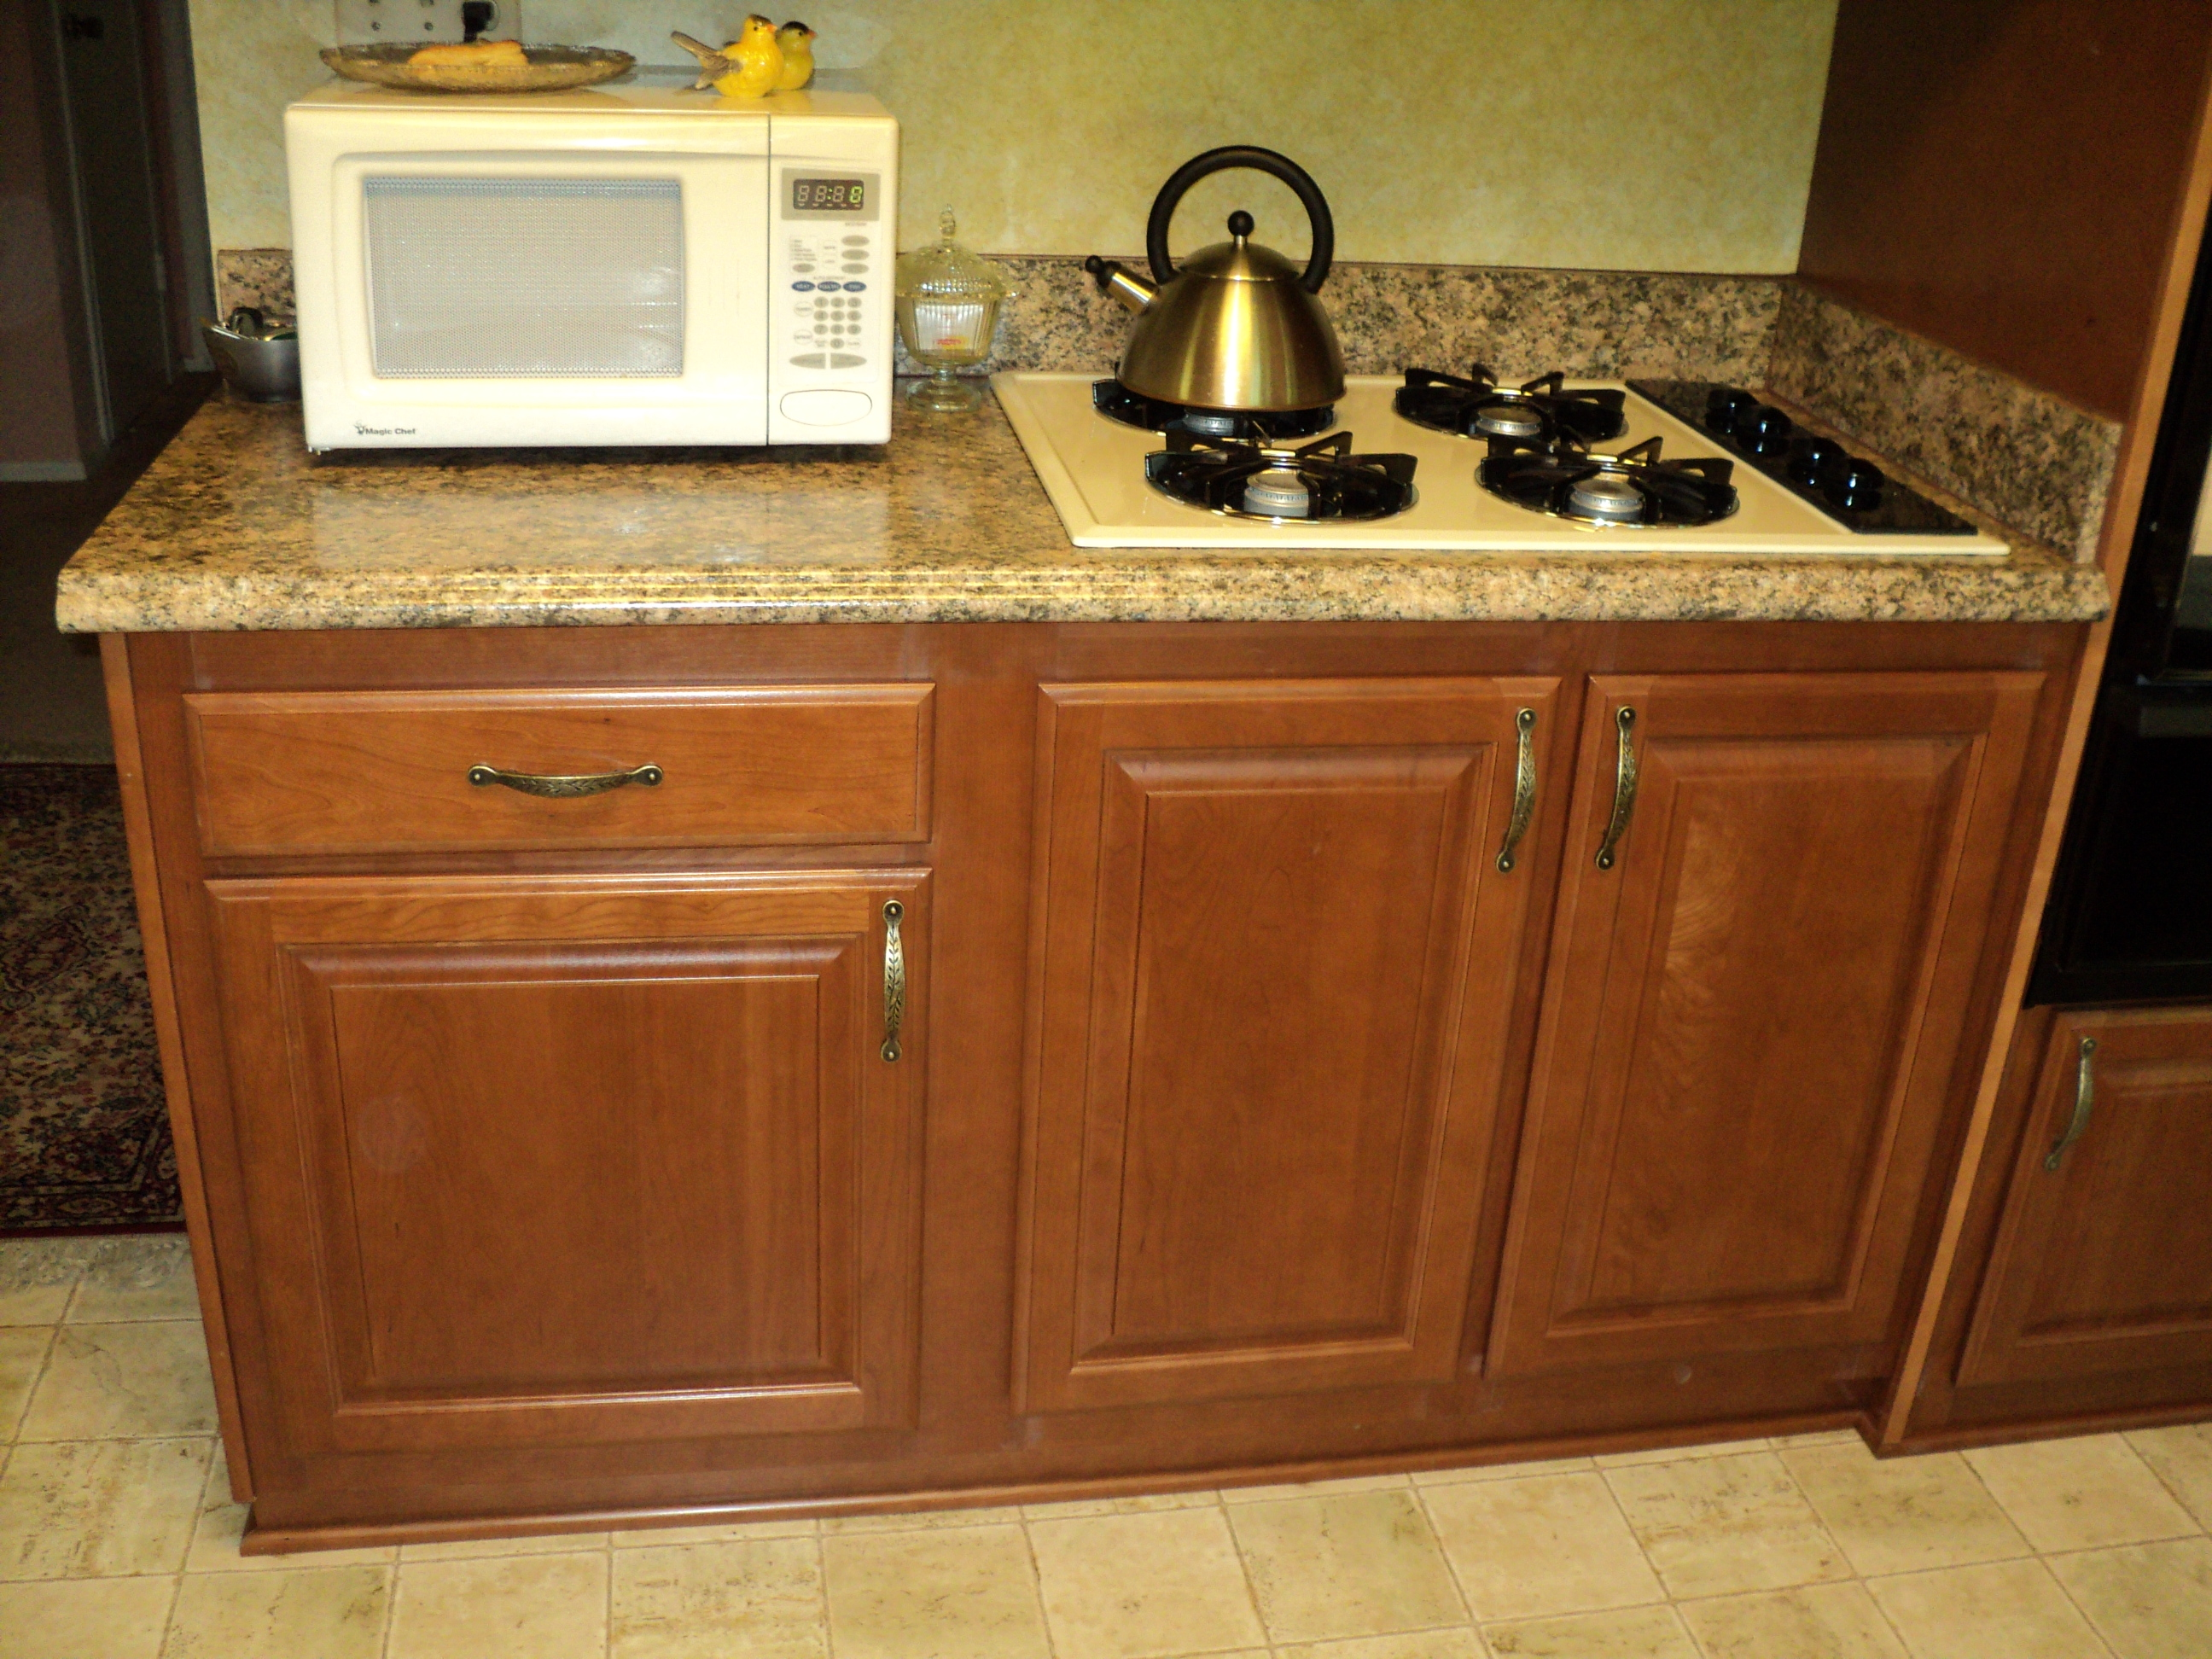 Laminate Countertop Thecabinetremodeler